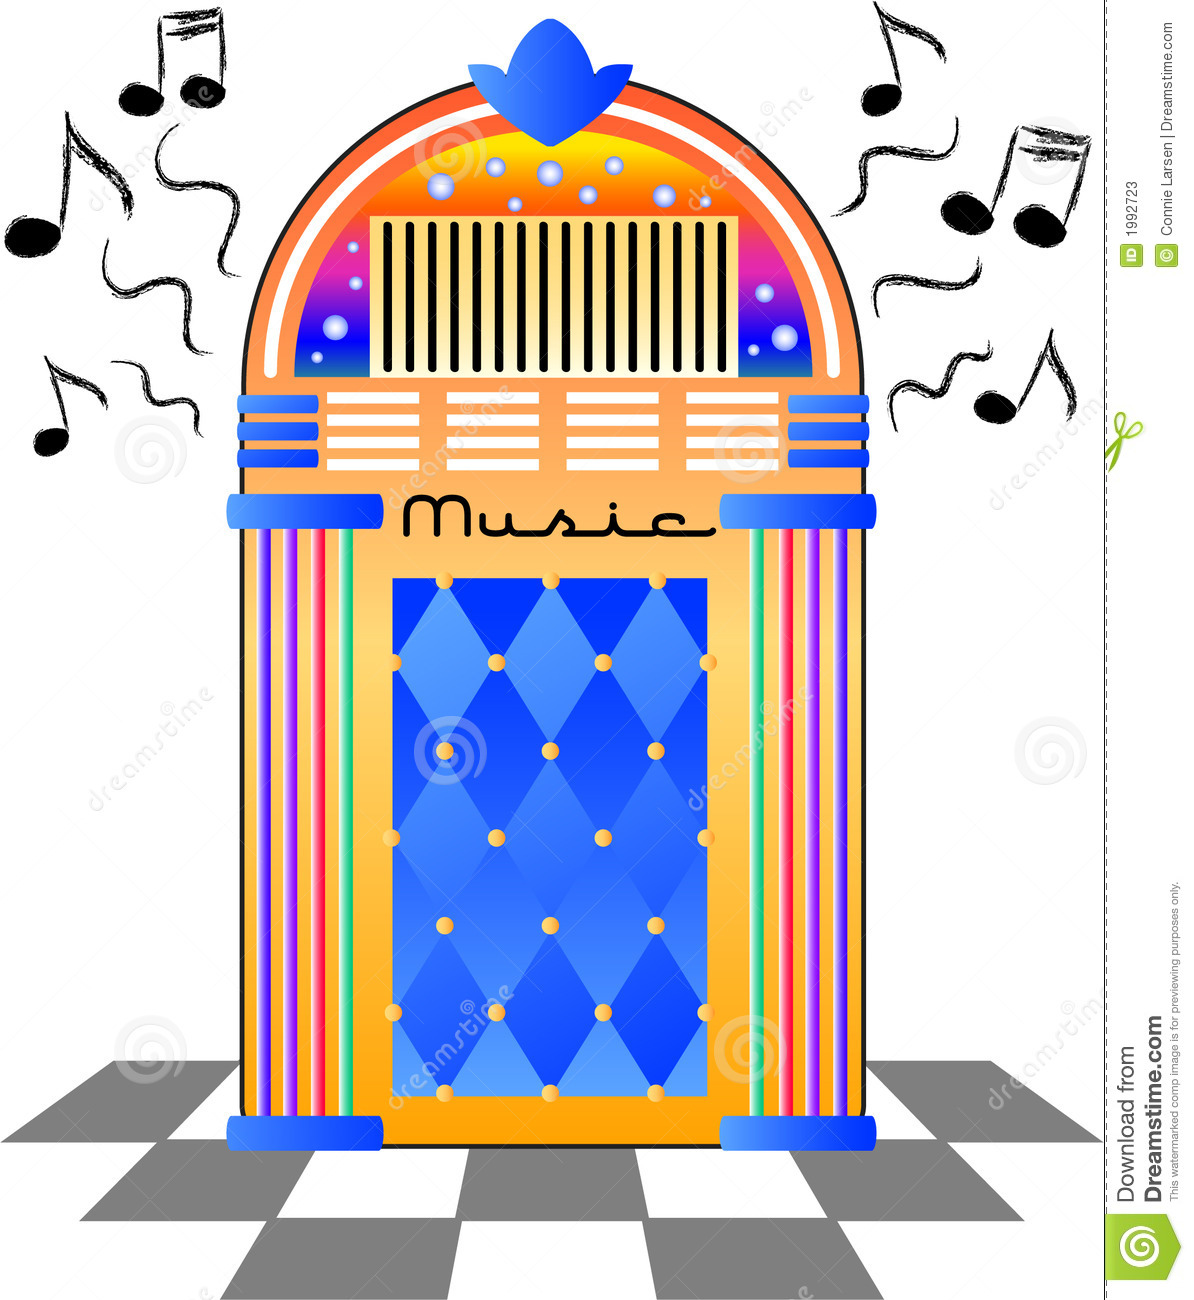 Brightly colored illustration of an old-fashioned music jukebox.